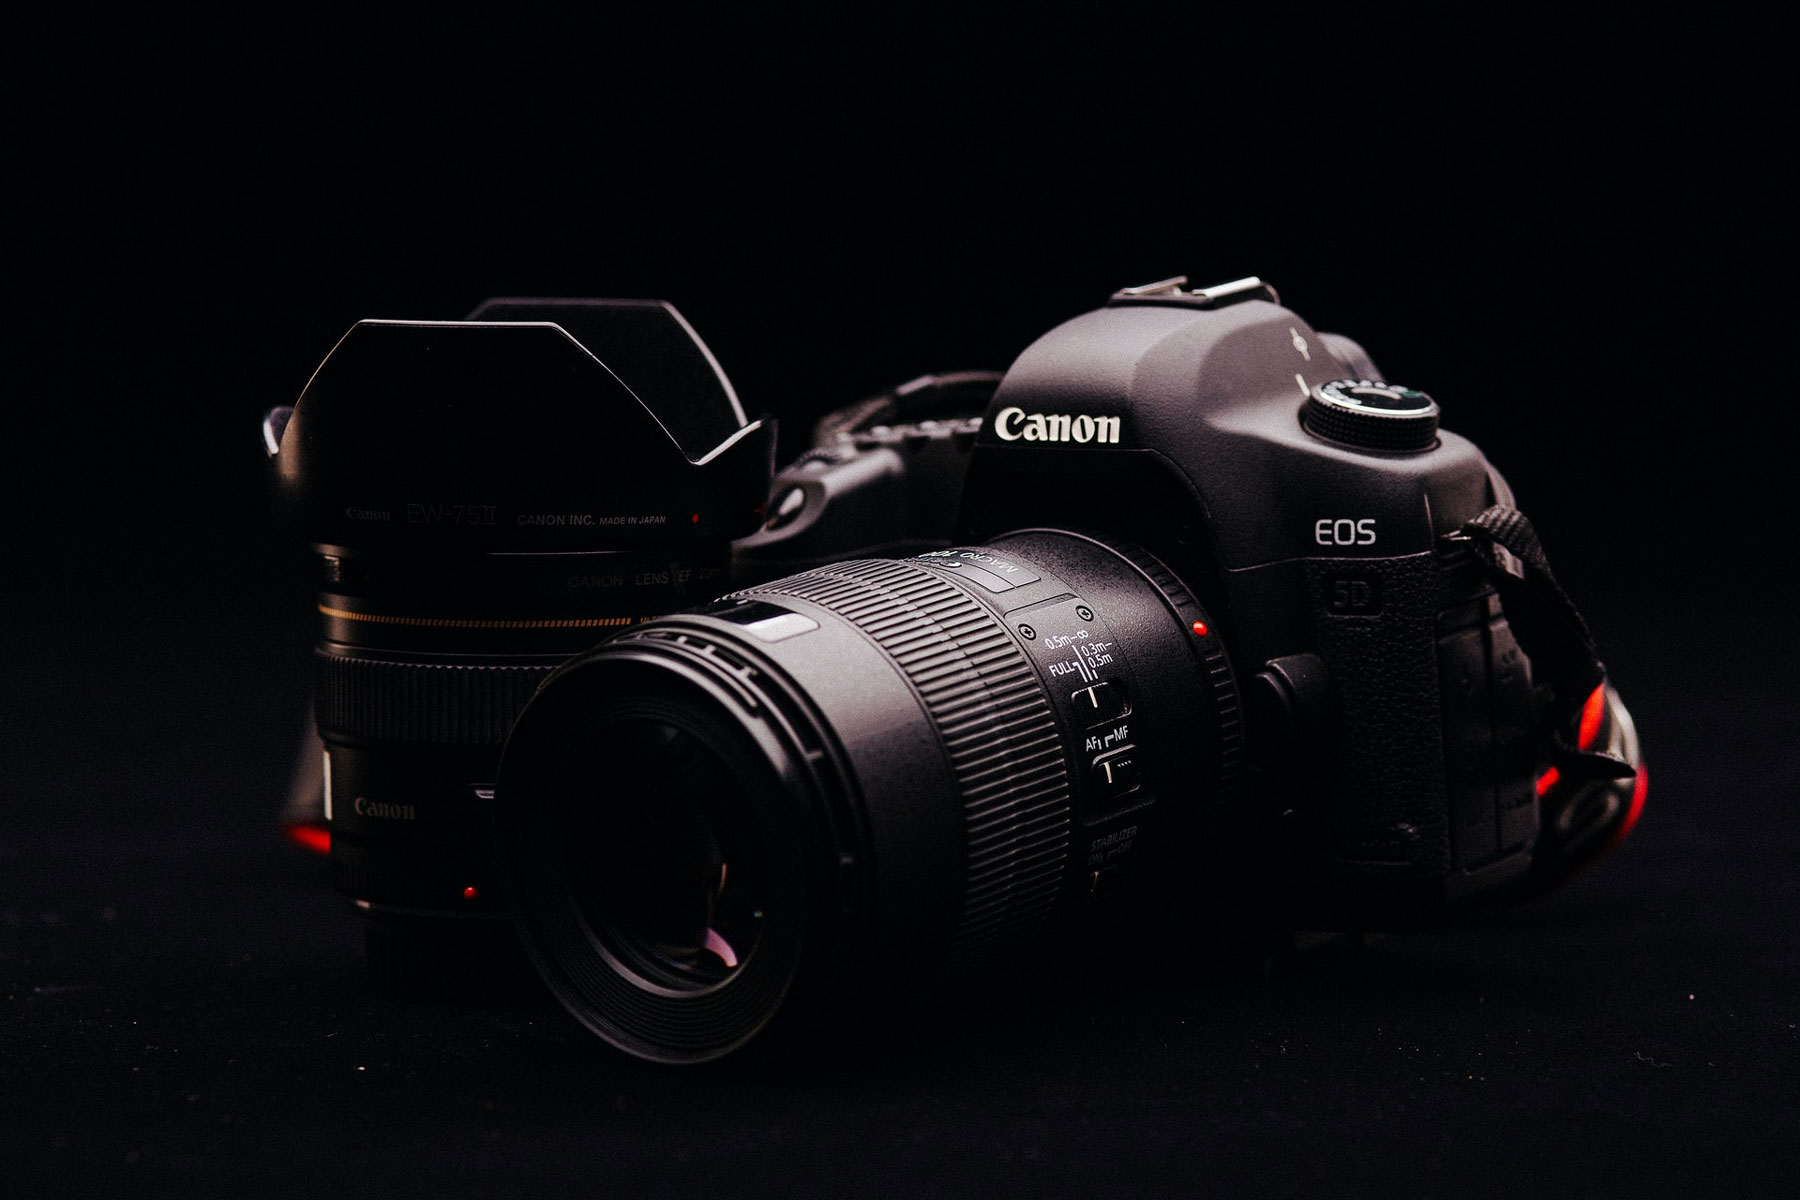 93 Canon Hashtags for Promoting Your Photography Shot on Canon Gear